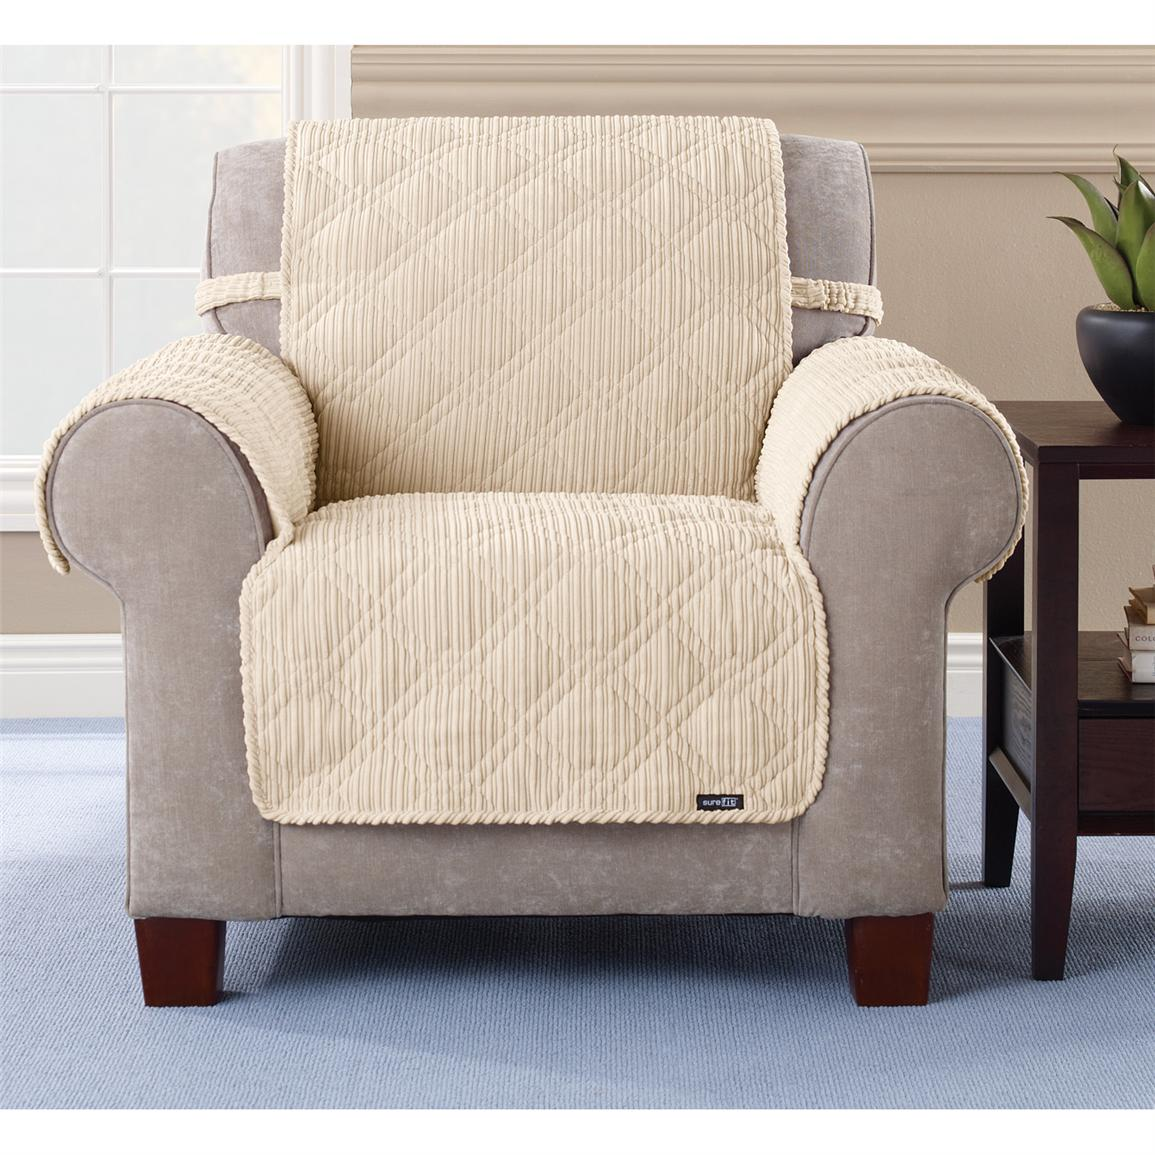 Pet Chair Covers Sure Fit Quilted Corduroy Chair Pet Cover 292844